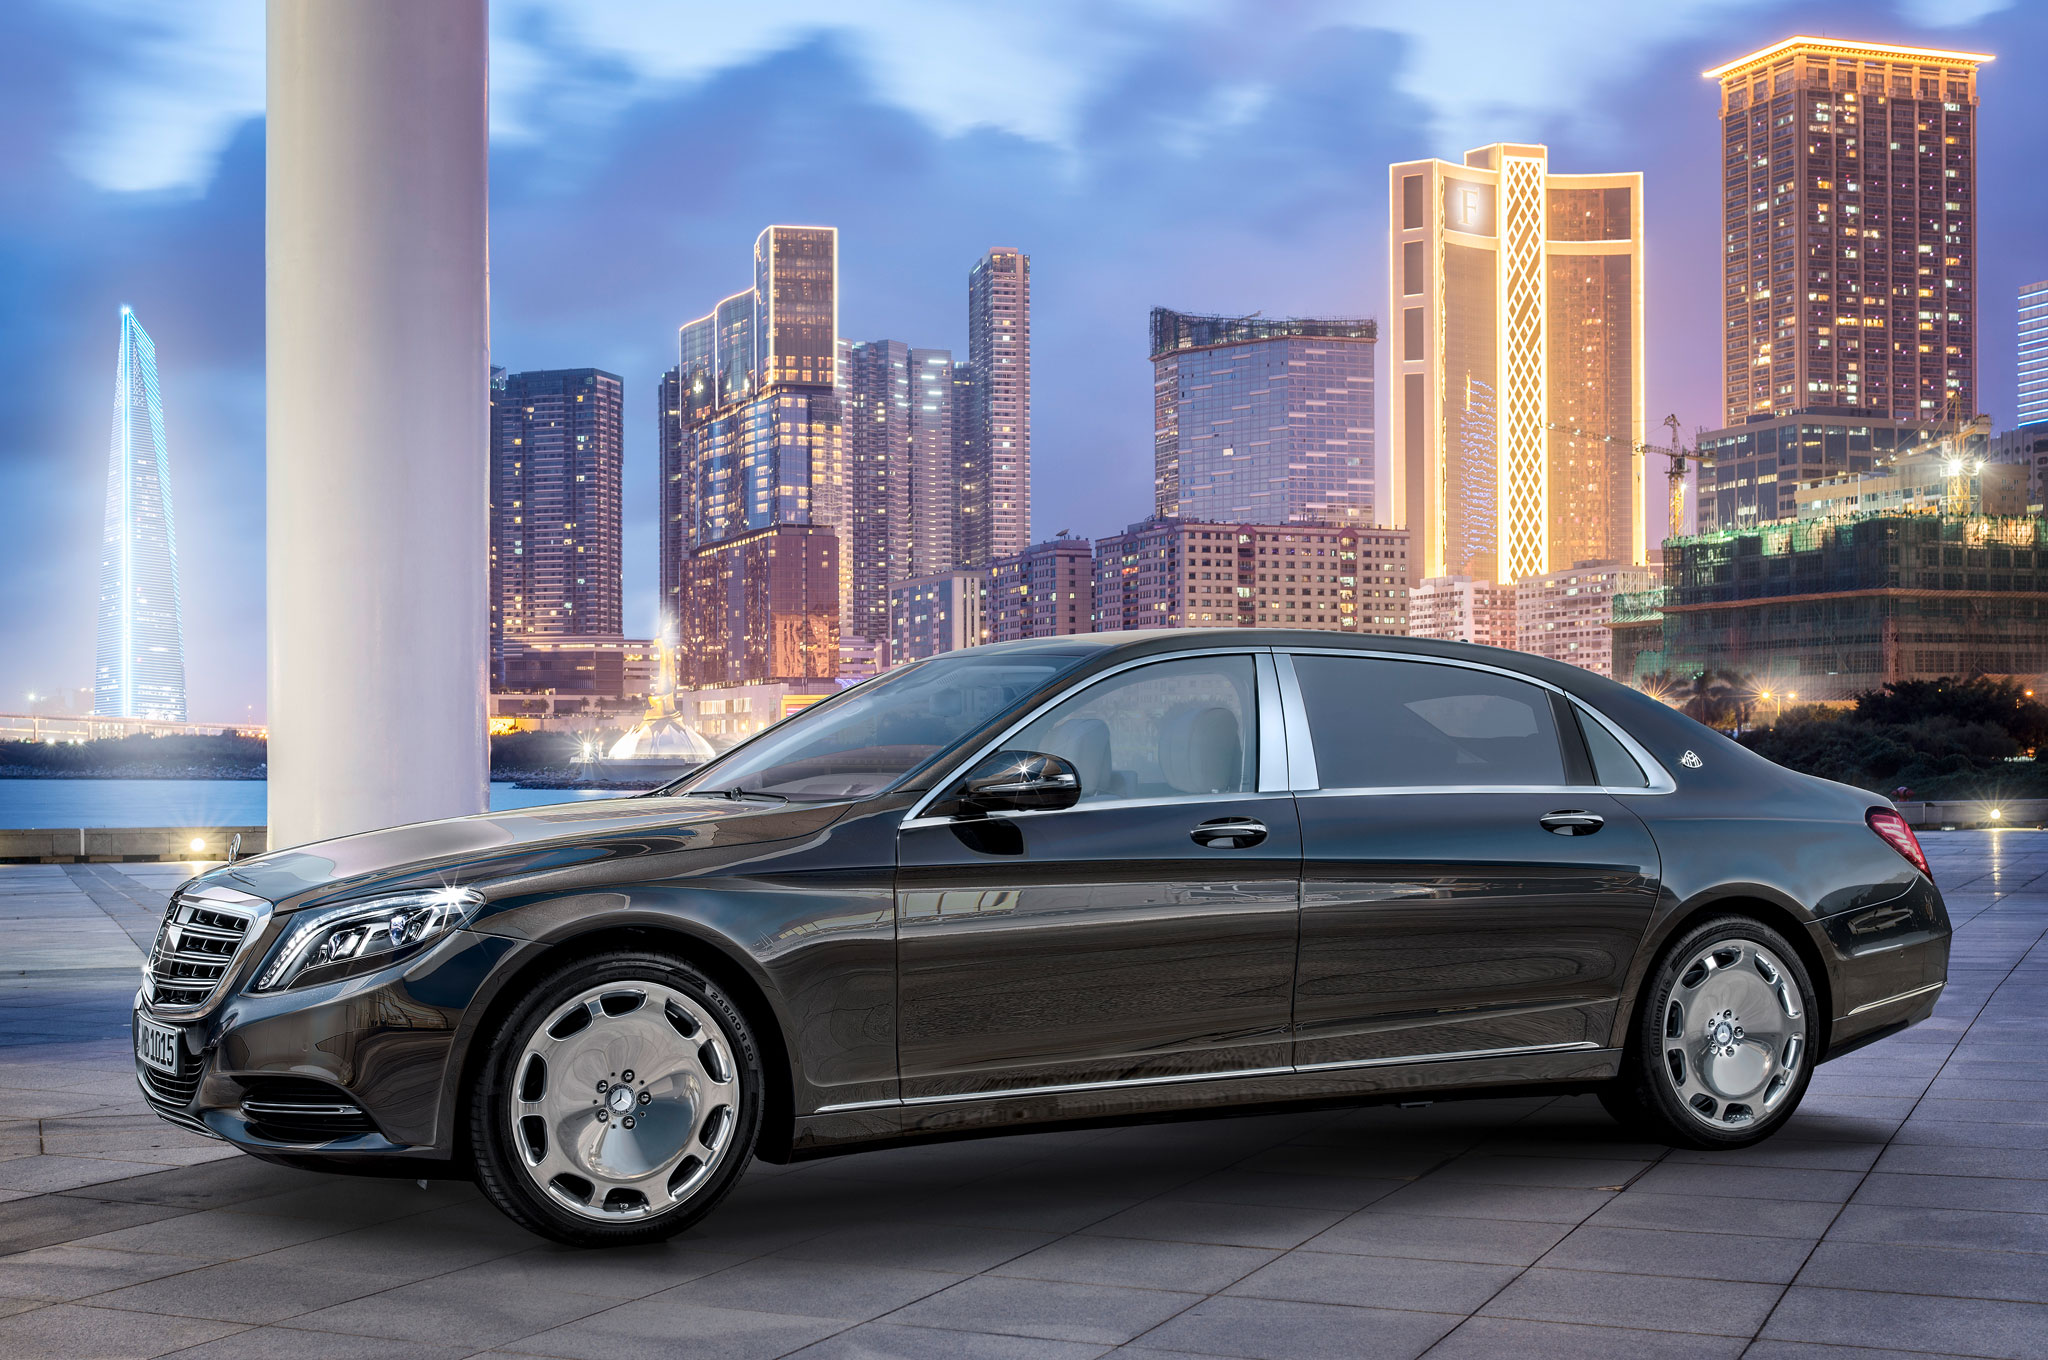 http://st.automobilemag.com/uploads/sites/11/2015/01/2016-Mercedes-Maybach-S600-front-driver-profile-1.jpg